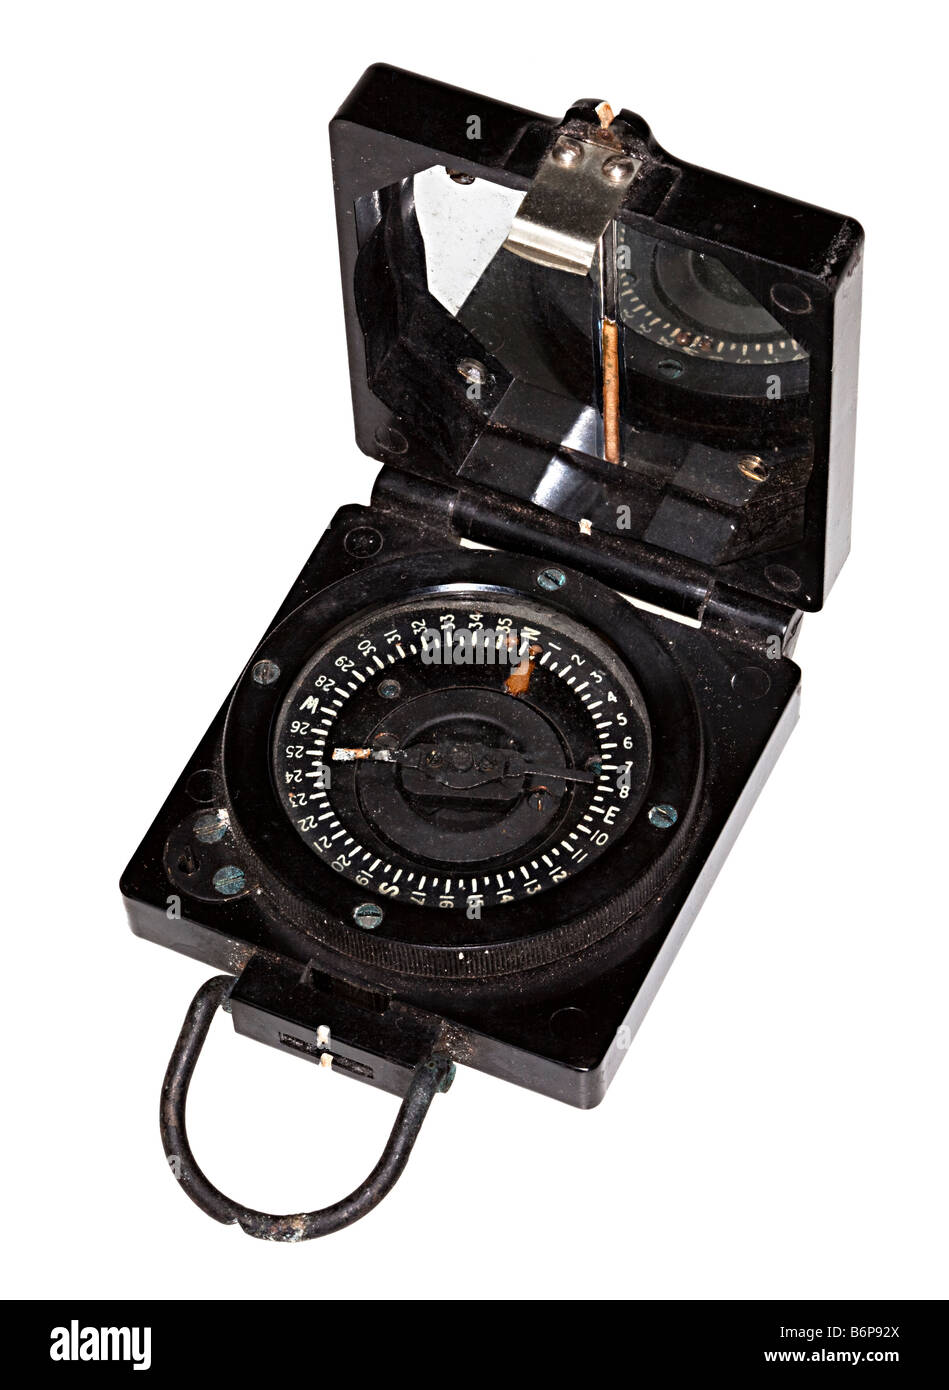 Second World War British Army marching compass now corroded with time - Stock Image